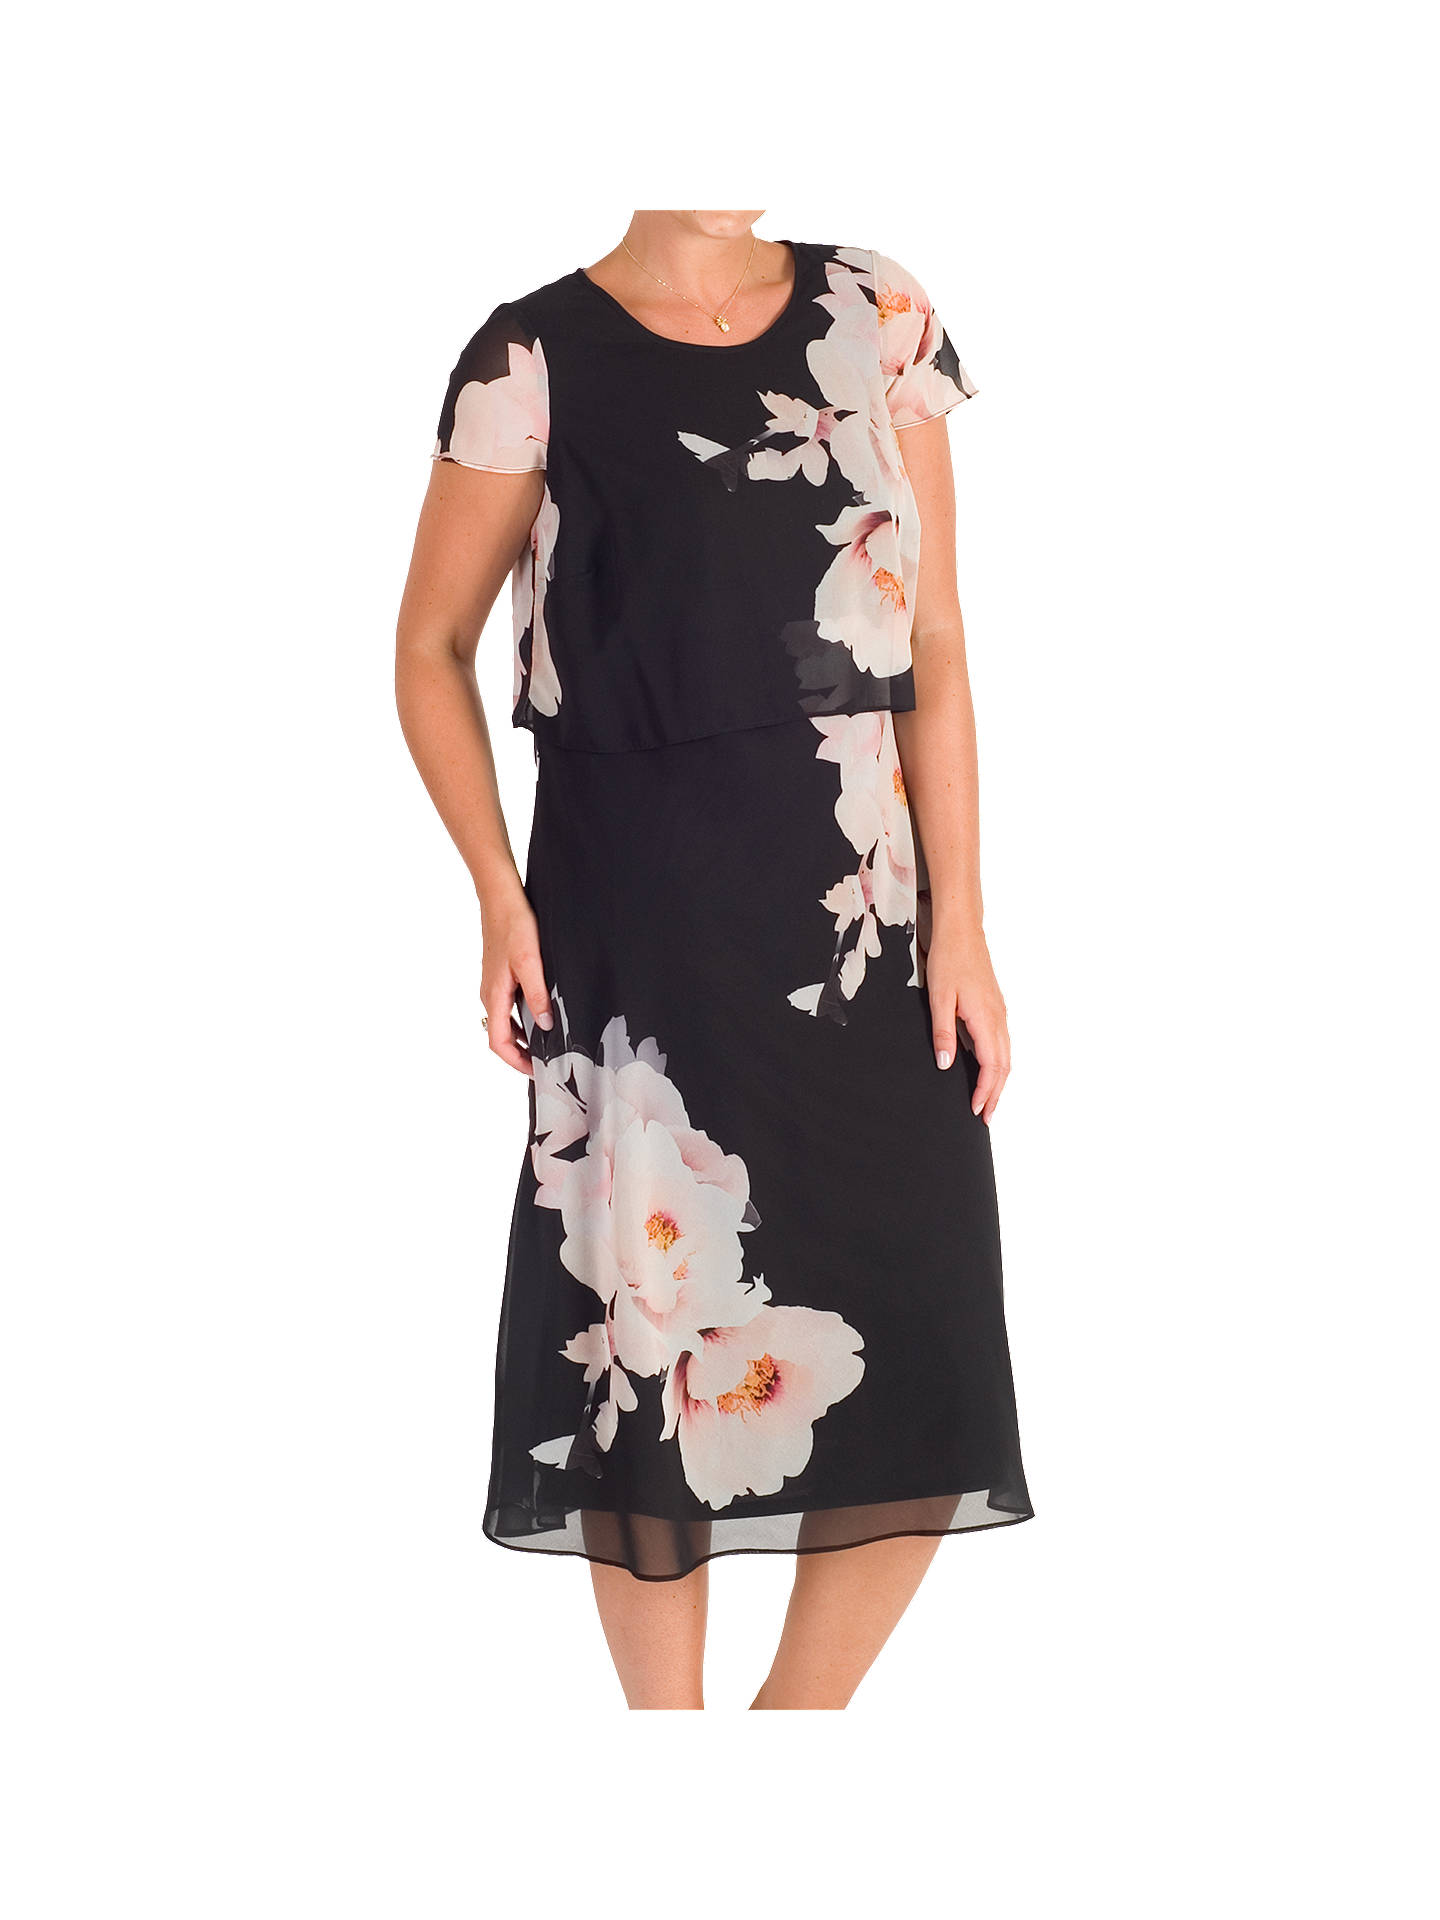 95ed88370388 ... Buy Chesca Floral Print Layered Chiffon Dress, Black/Blush, 12 Online  at johnlewis ...